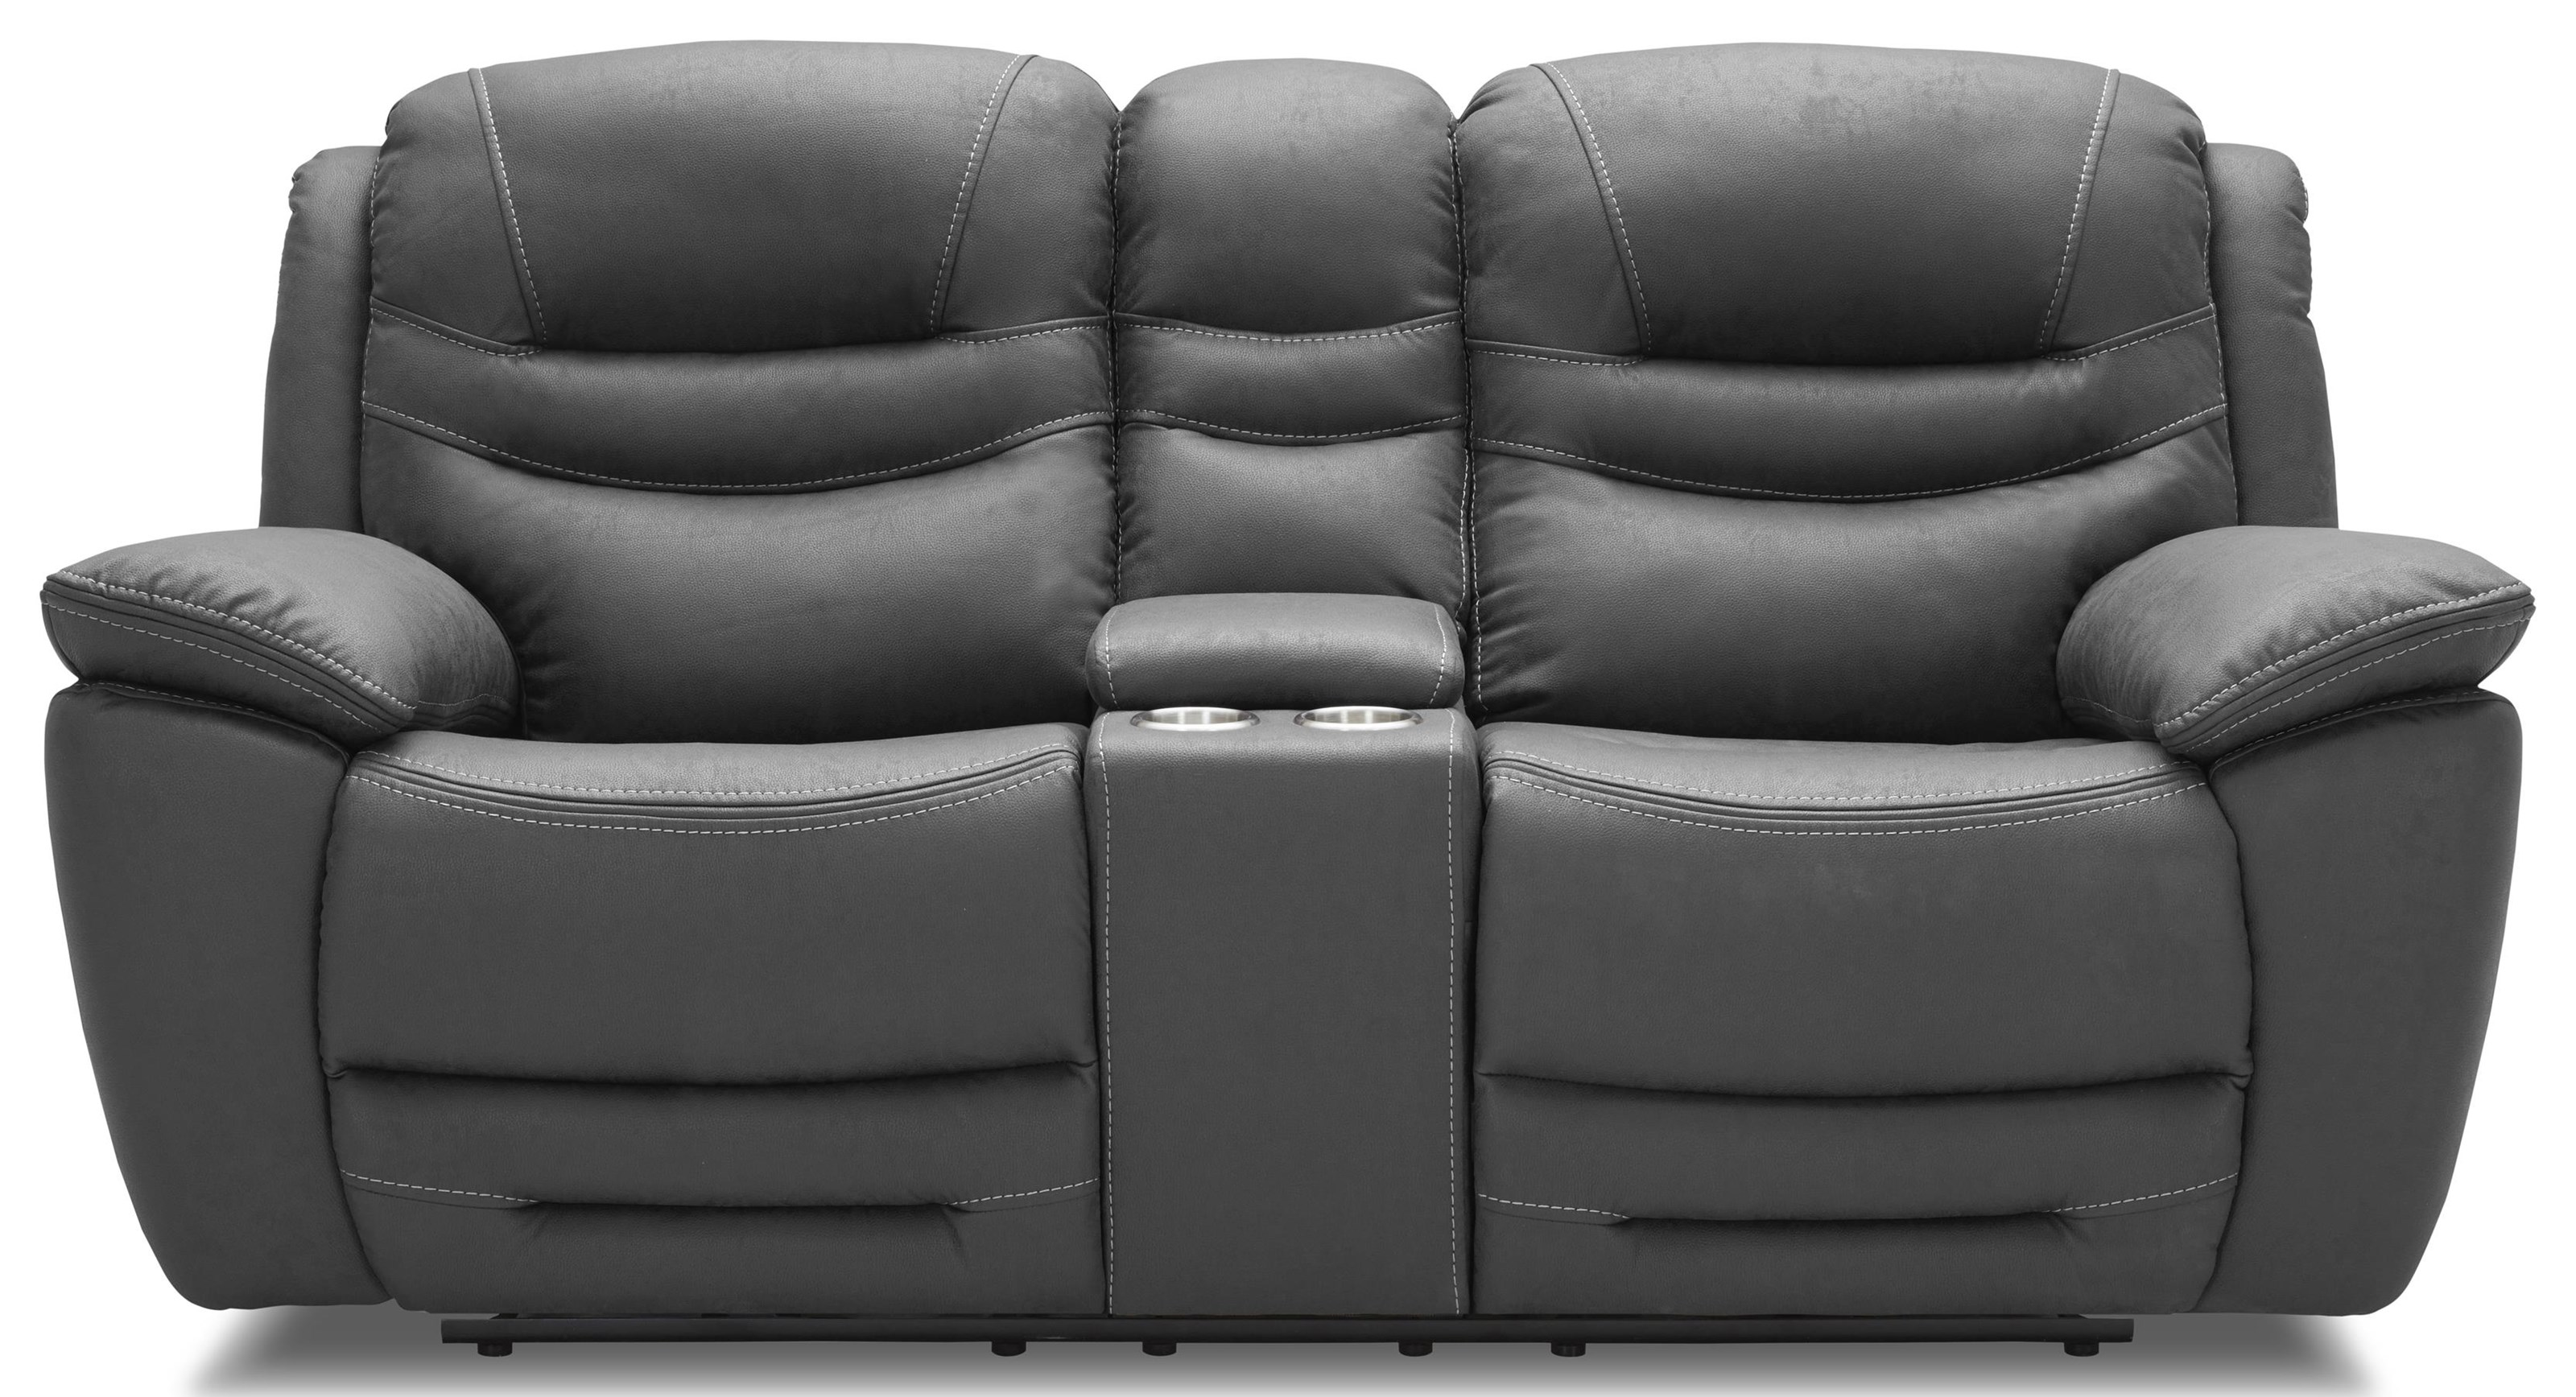 KM083 Pwr Reclining Loveseat w/ Console by Kuka Home at Beck's Furniture